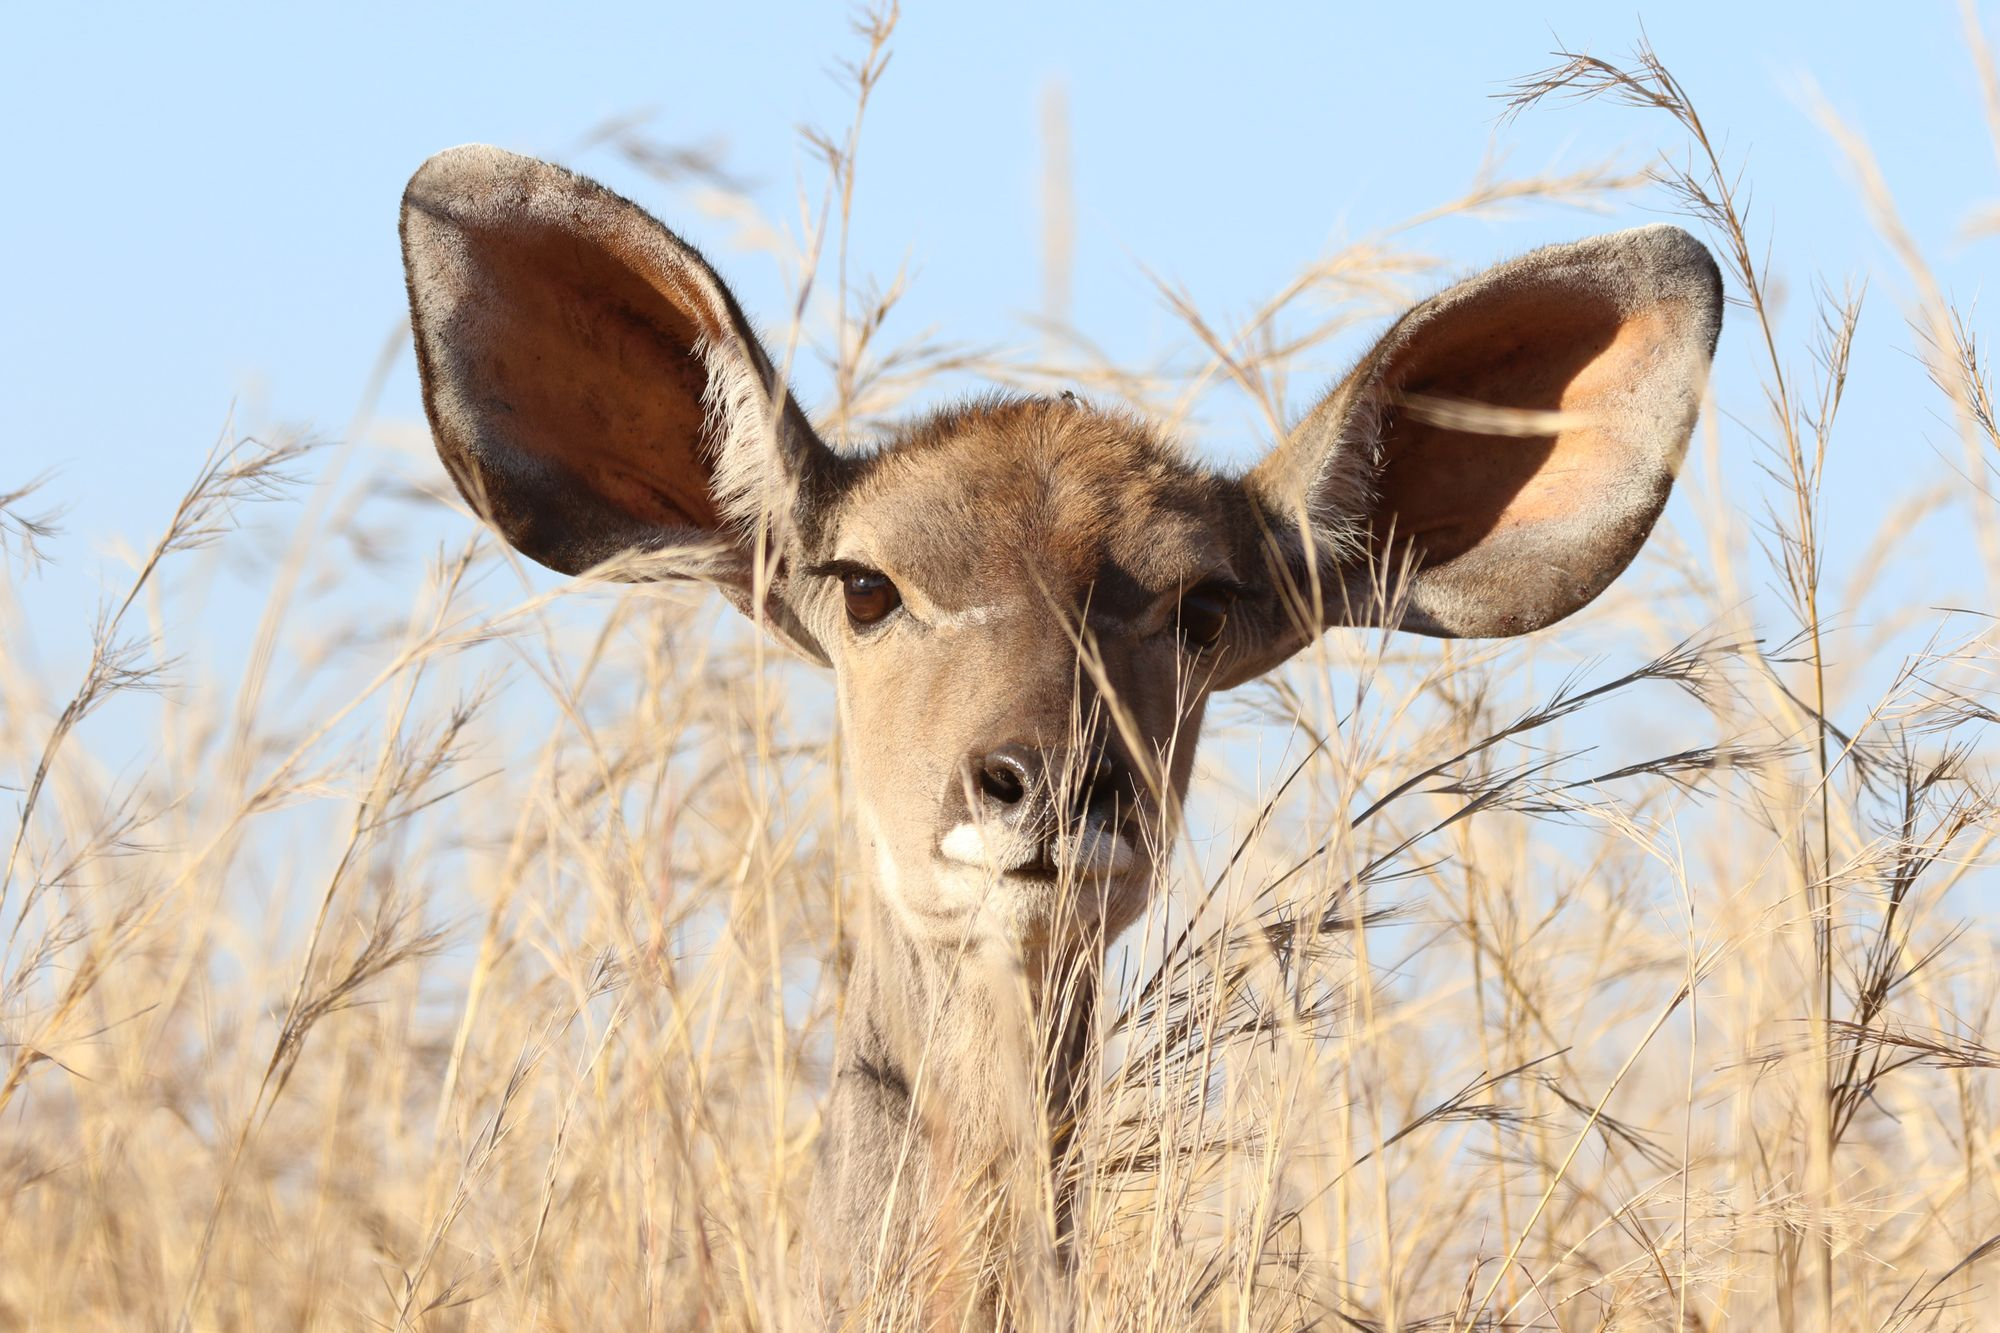 A deer in the grass with large ears